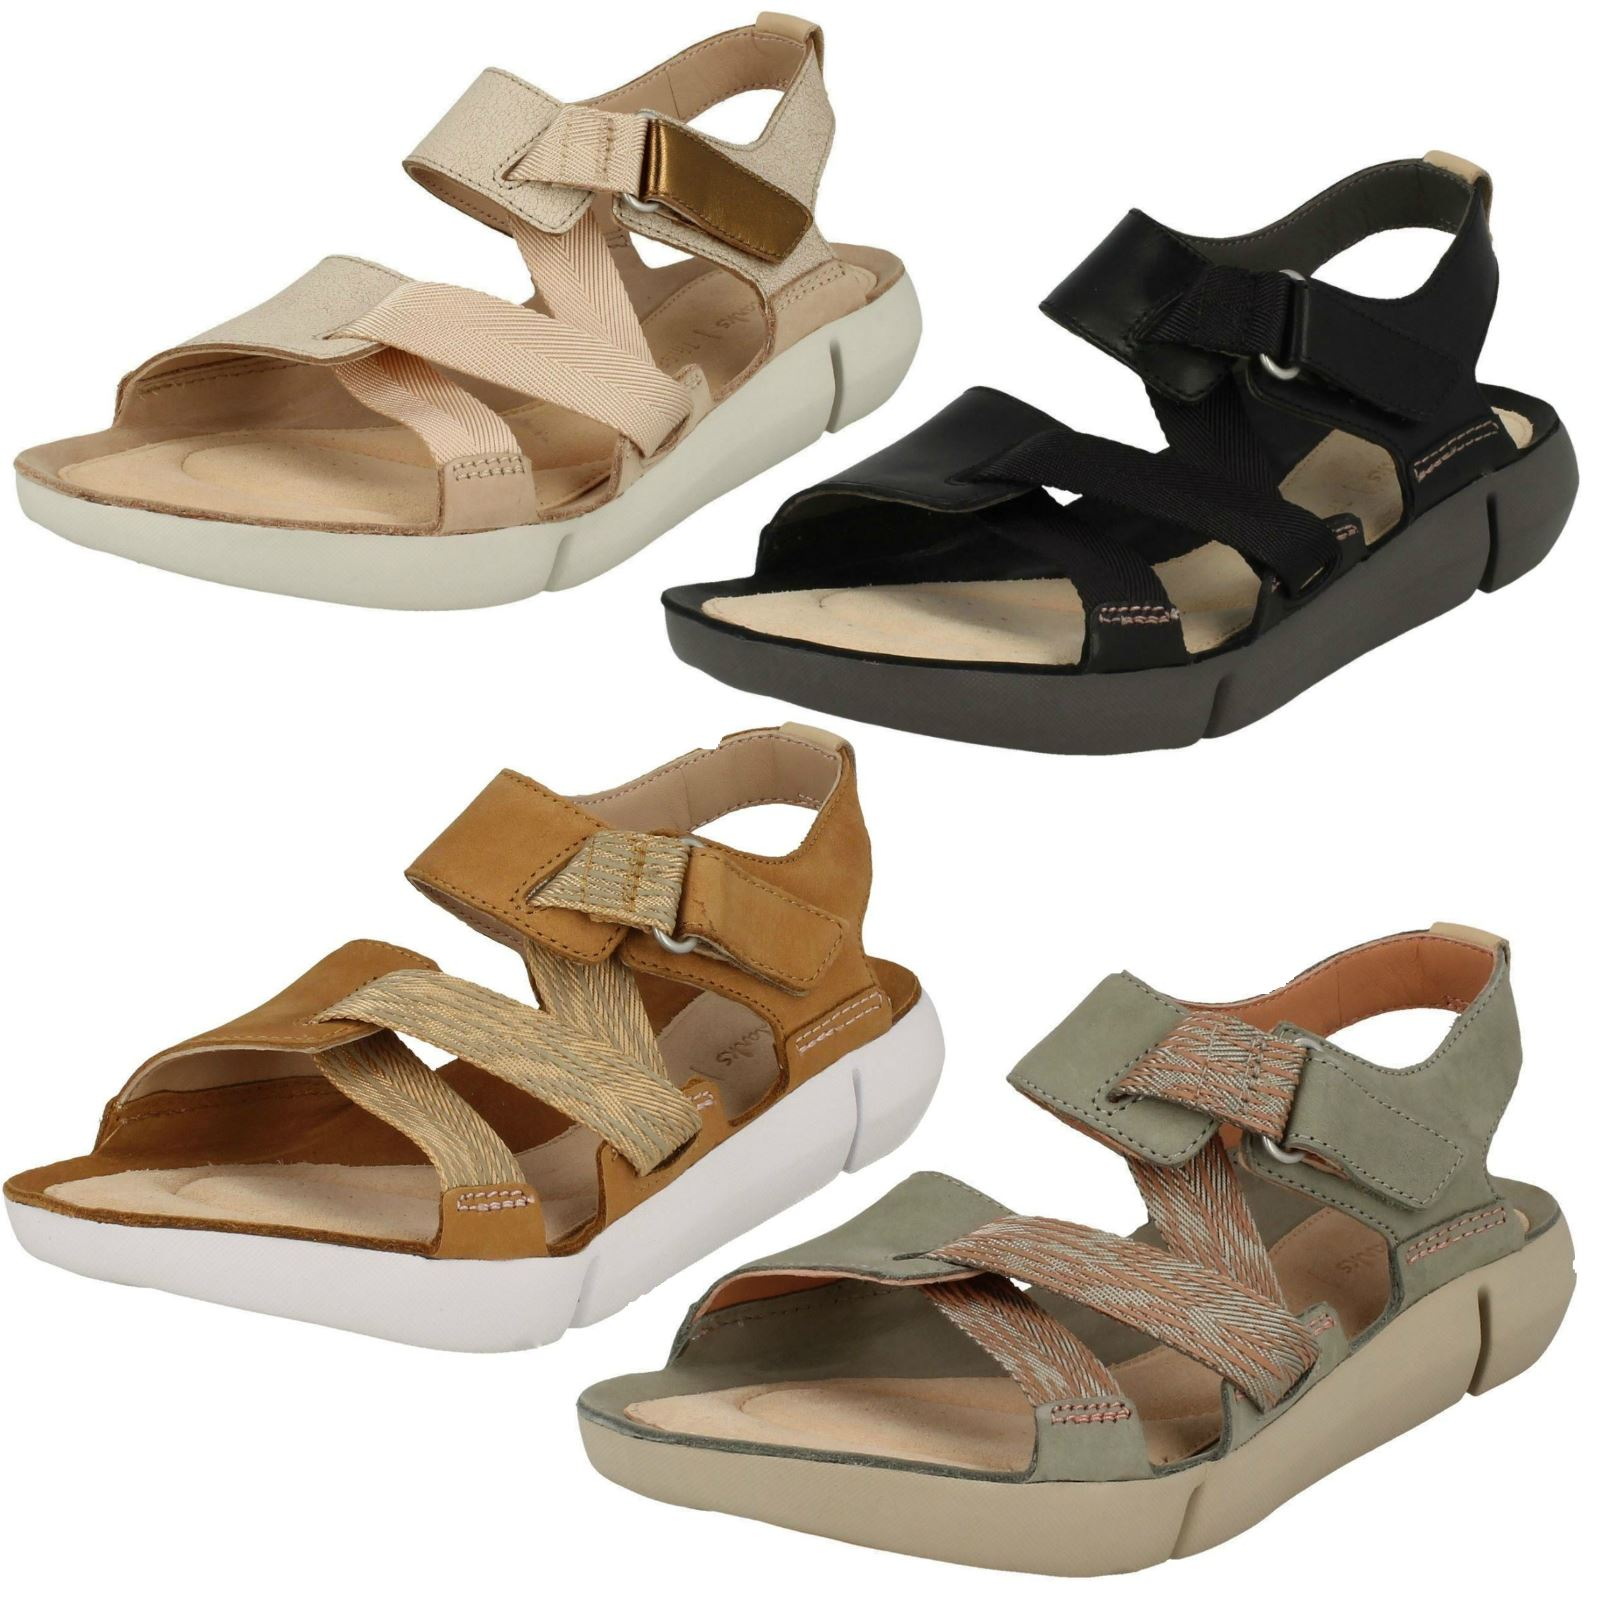 c99c1b01be3f41 Details about Ladies Clarks Trigenic Sporty Style Riptape Leather Sandals -  Tri Clover